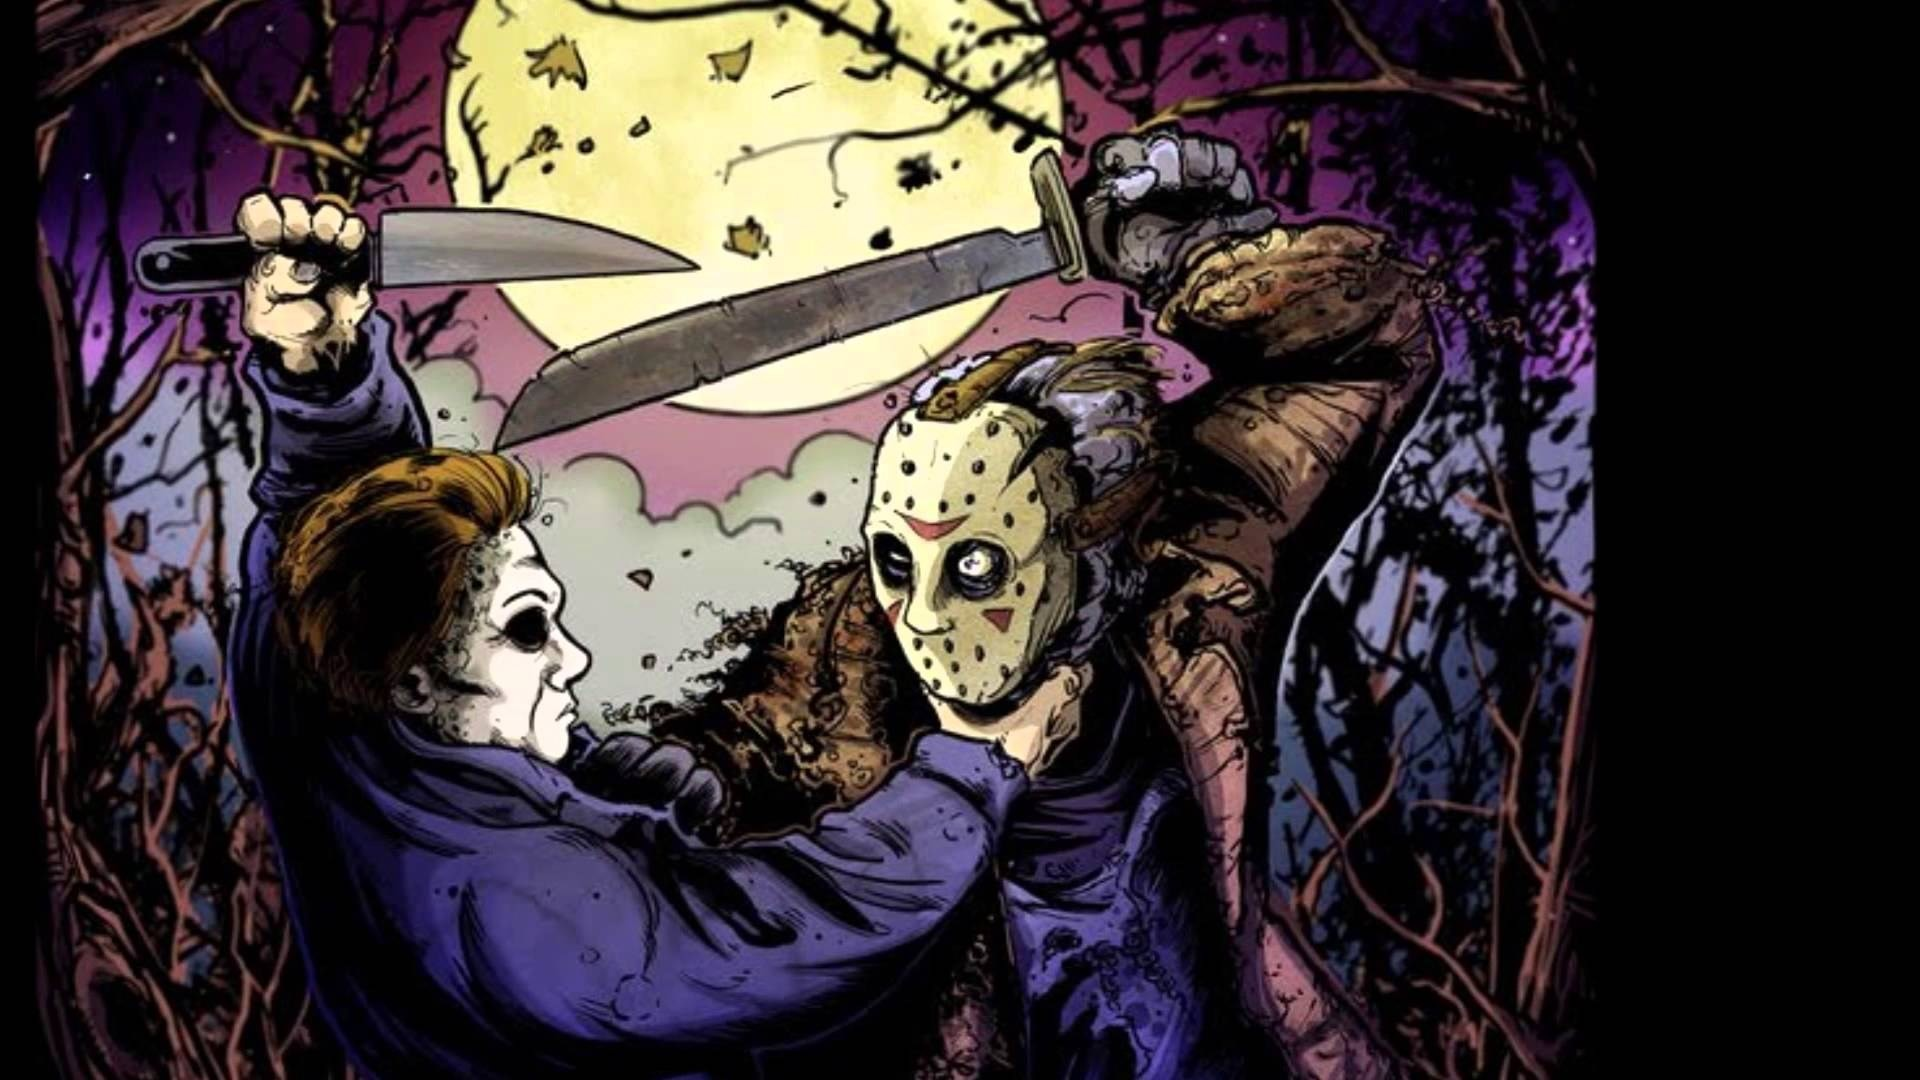 Halloween 2 Wallpapers Jason Voorhees Vs Michael Myers Art